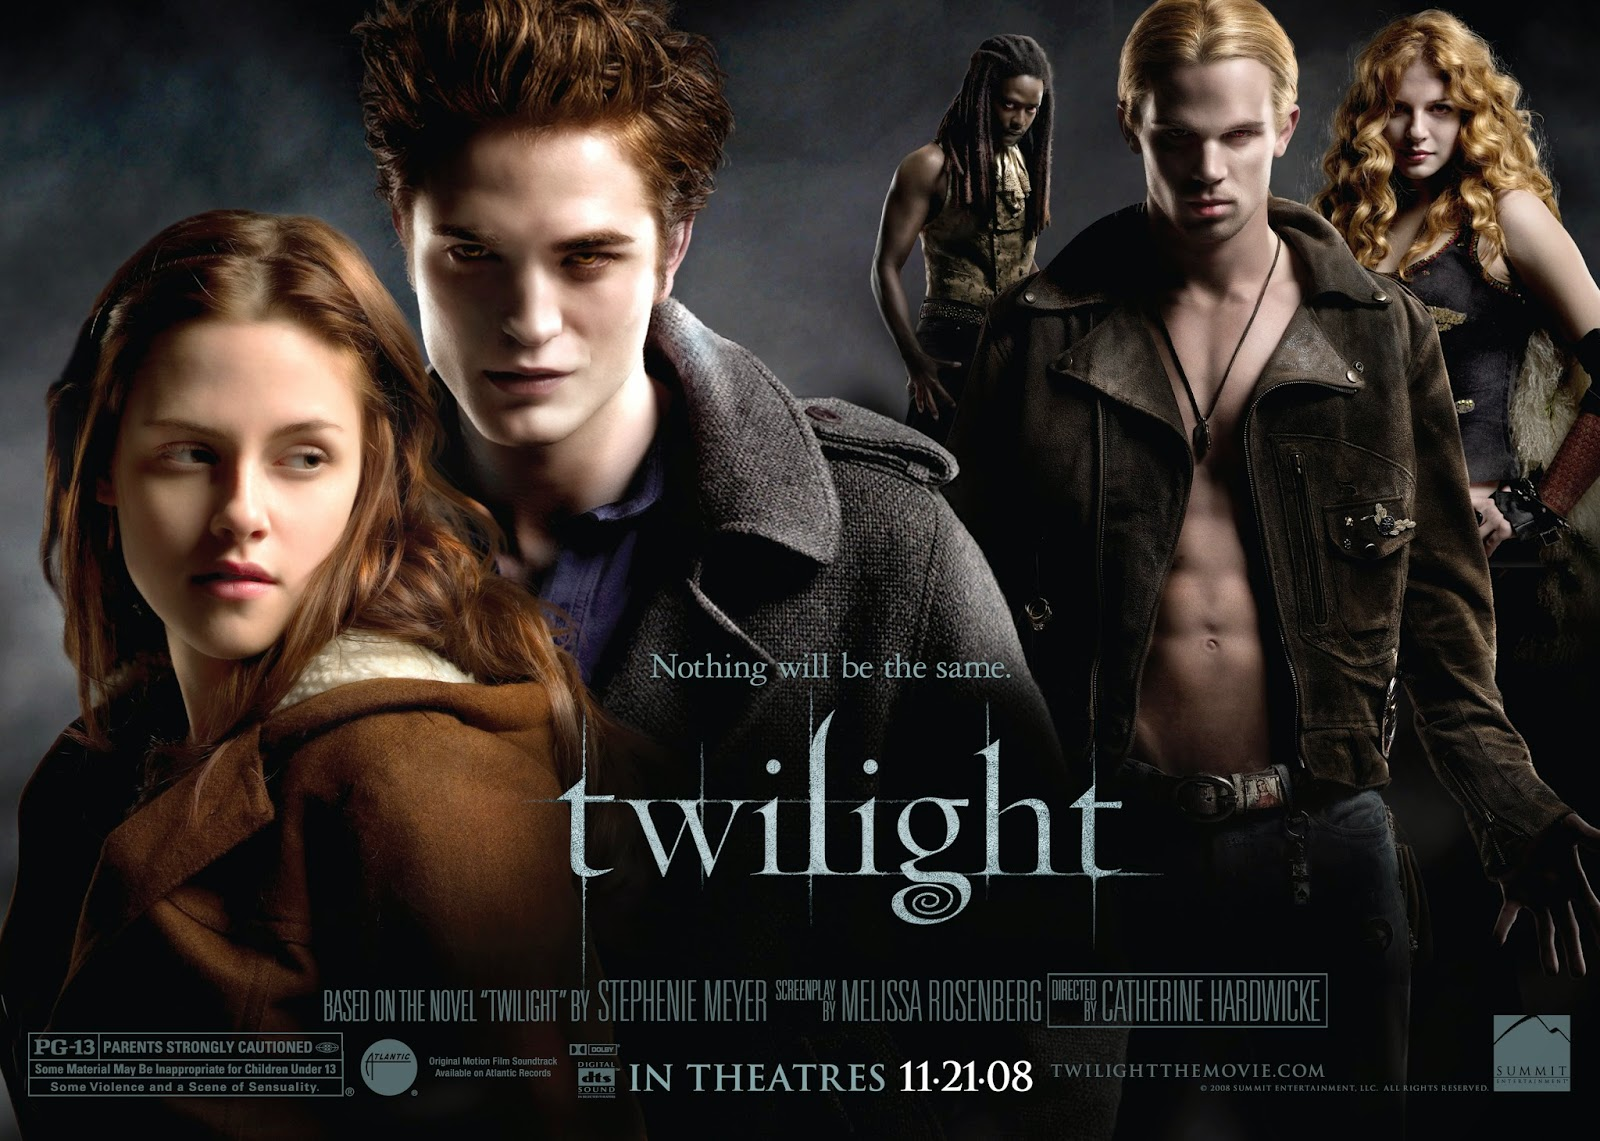 The twilight saga: breaking dawn – part 1 two-disc special edition.